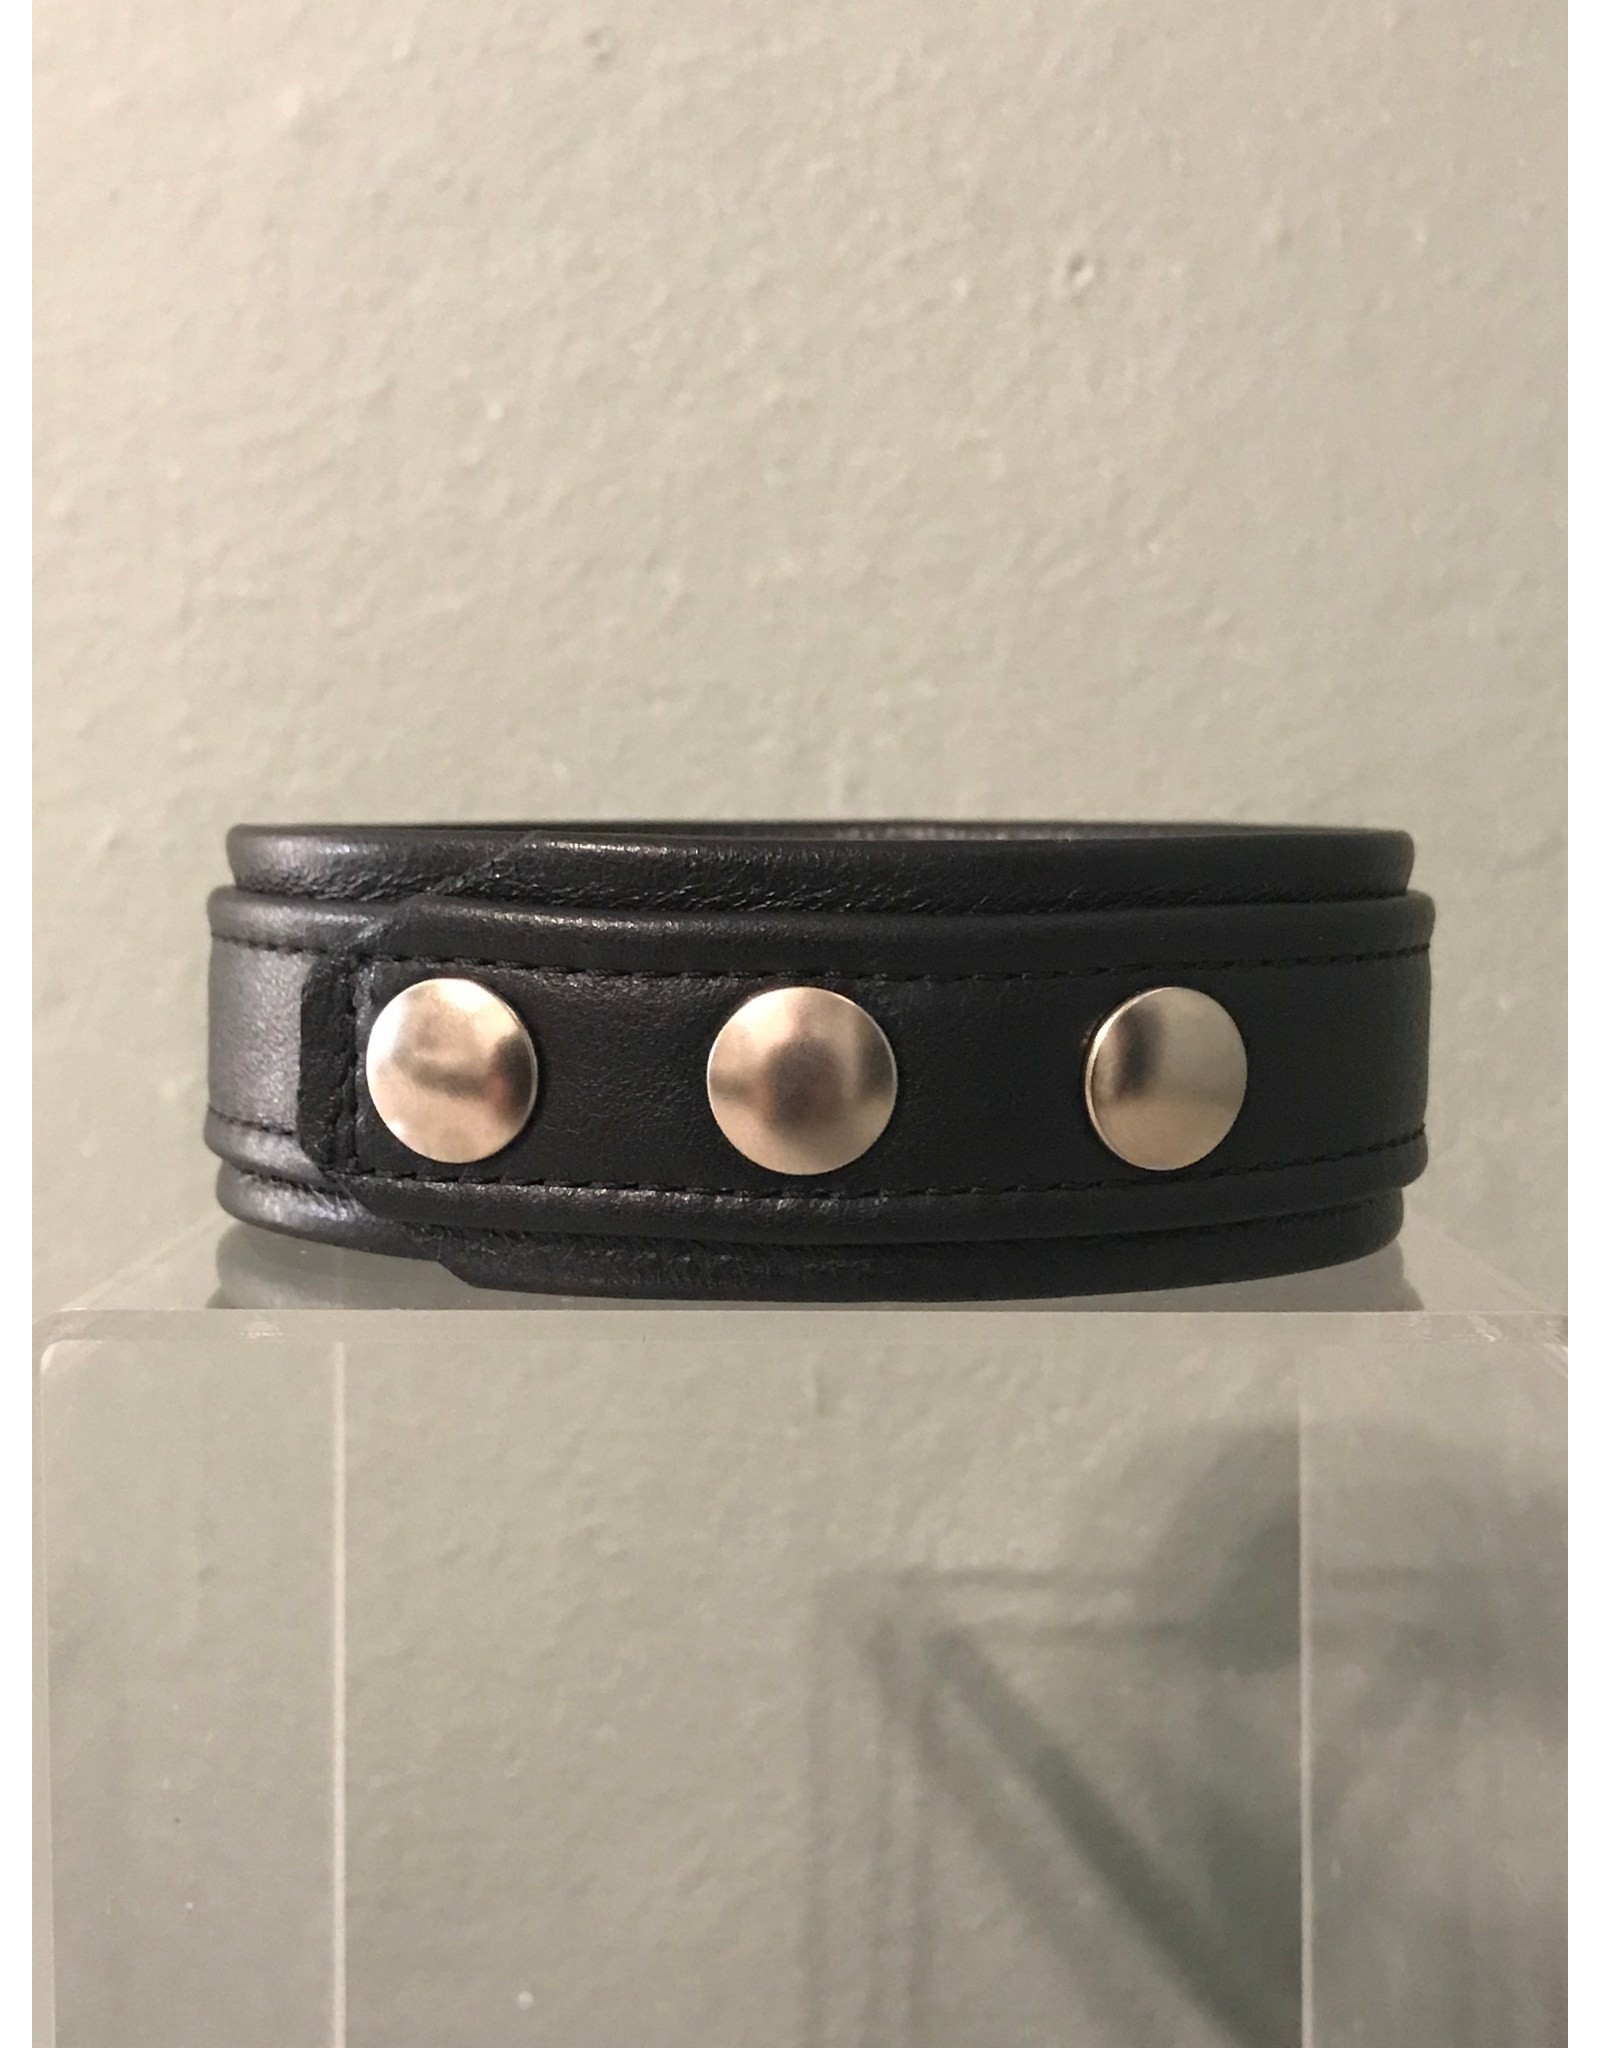 Doghouse Leathers Crafting DH Leathers 3 Snap Armband with Piping